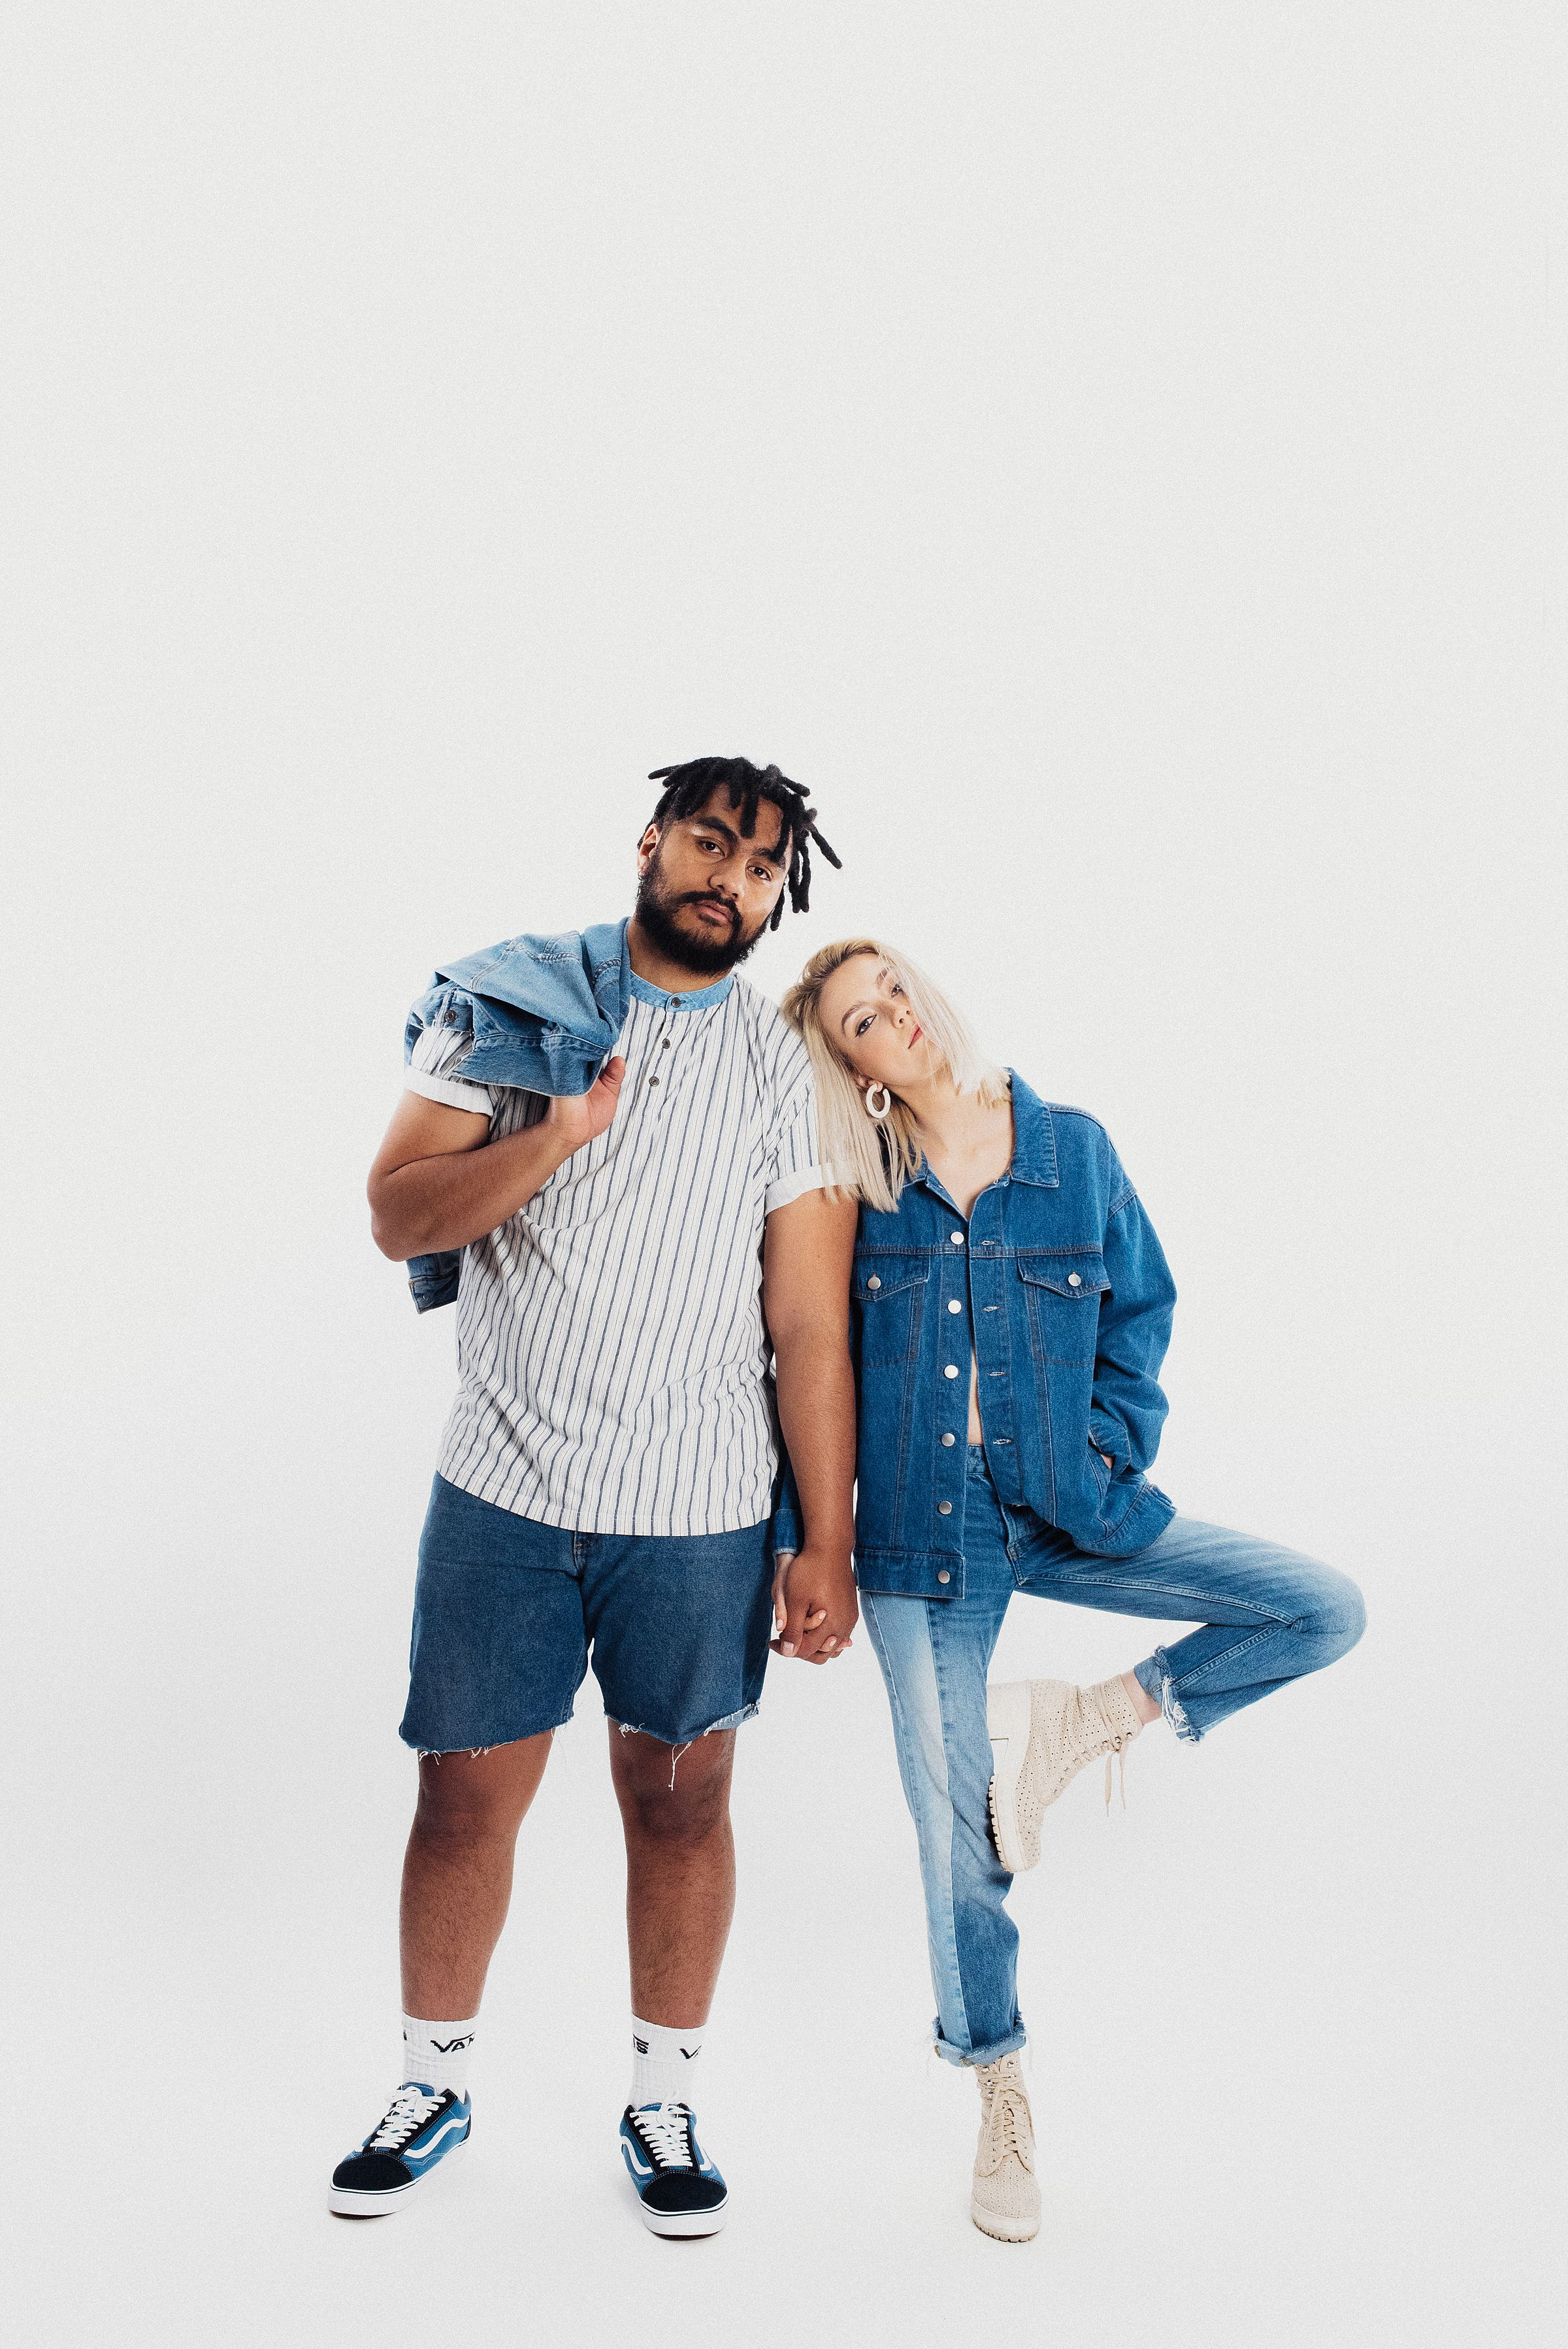 all-jean-couples-session_5409.jpg